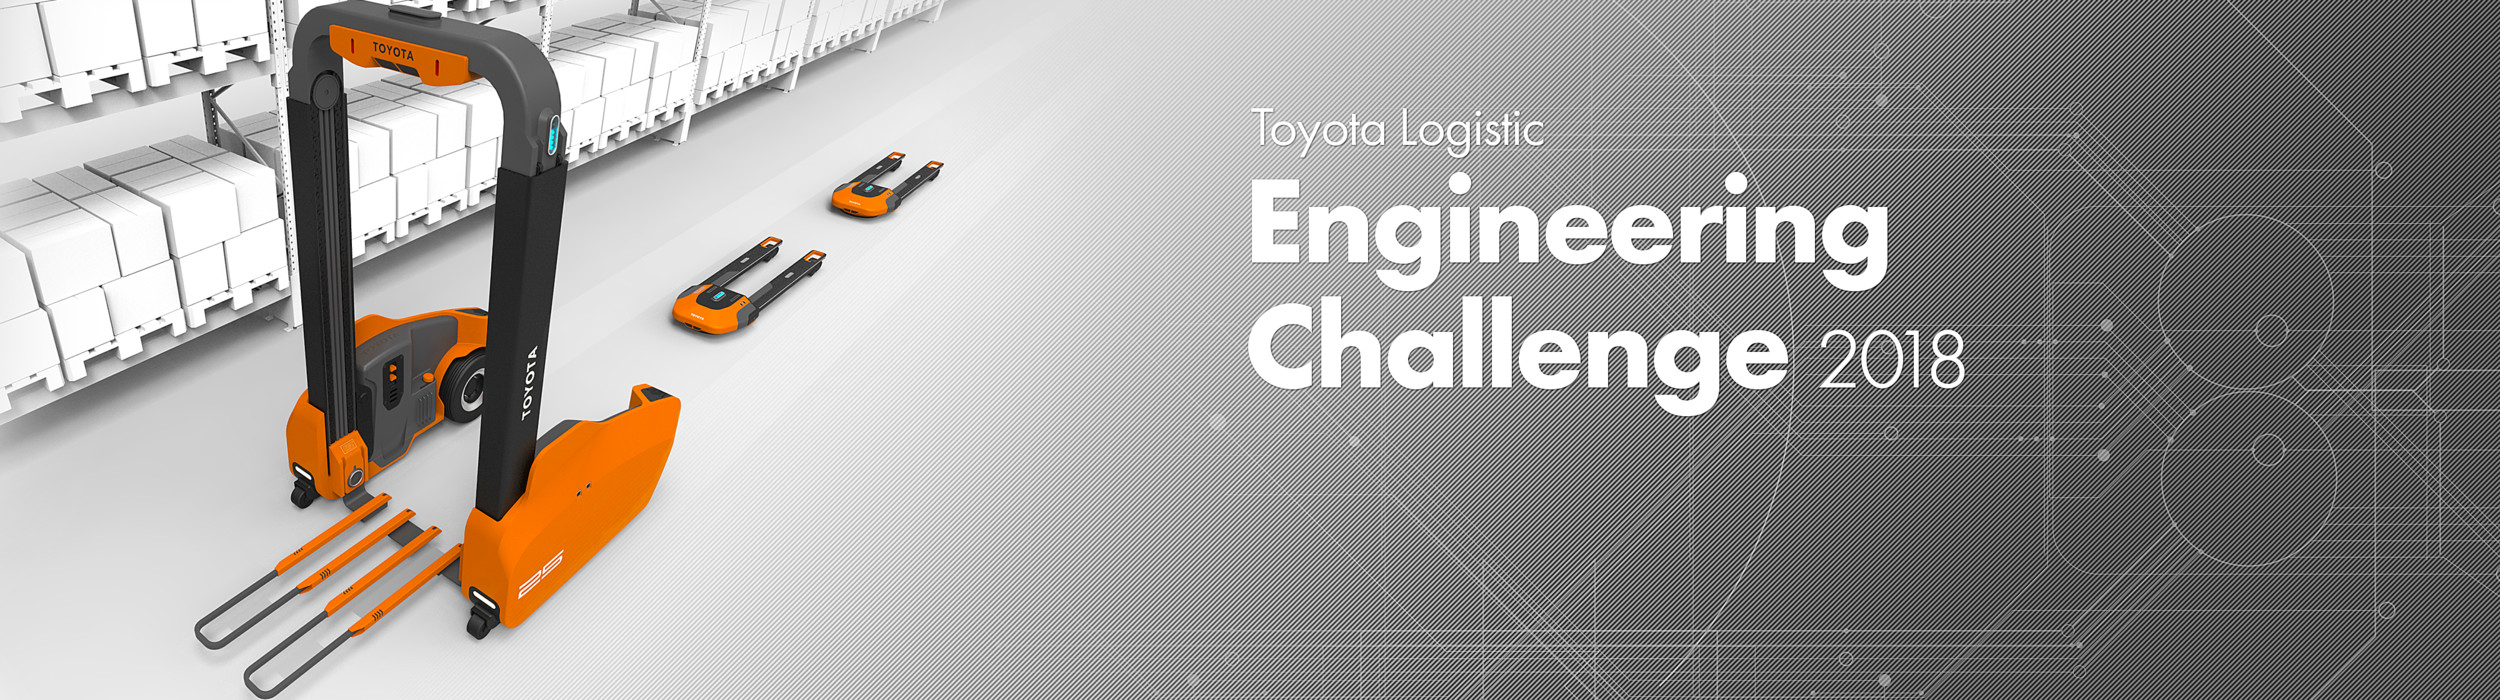 Toyota Logistic Engineering Challenge